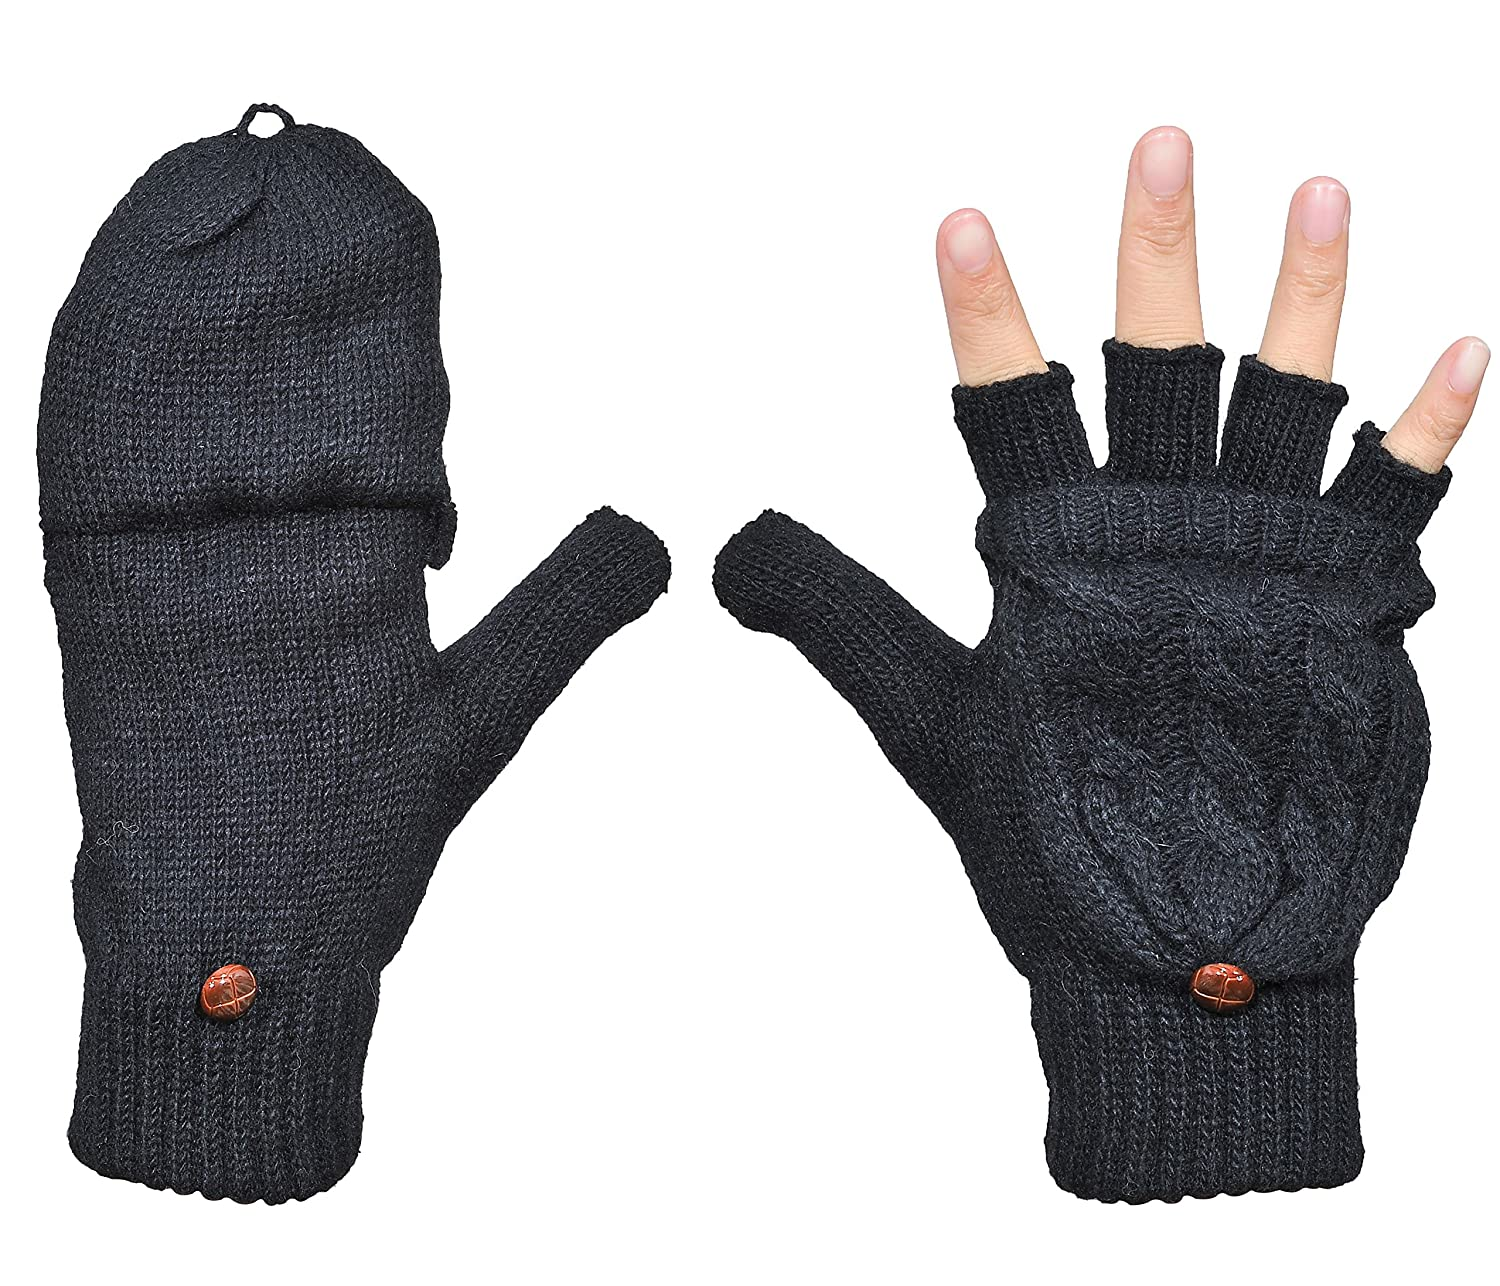 357301eaf3bc1 Beurlike Women s Winter Gloves Warm Wool Knitted Convertible Fingerless  Mittens (Black) at Amazon Women s Clothing store